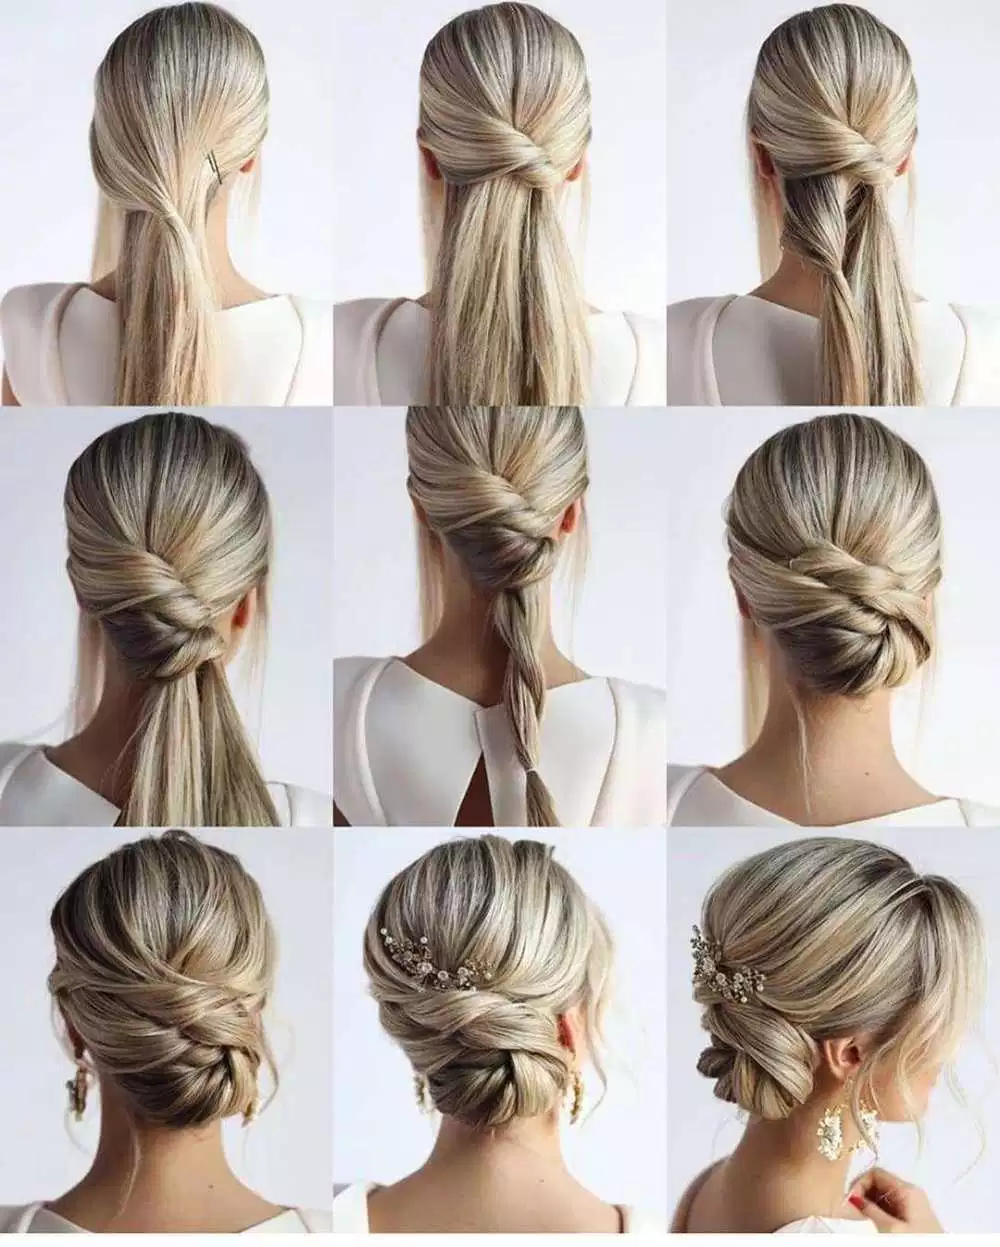 65 Women's Easy Hairstyles Step By Step DIY #easyhairstyles